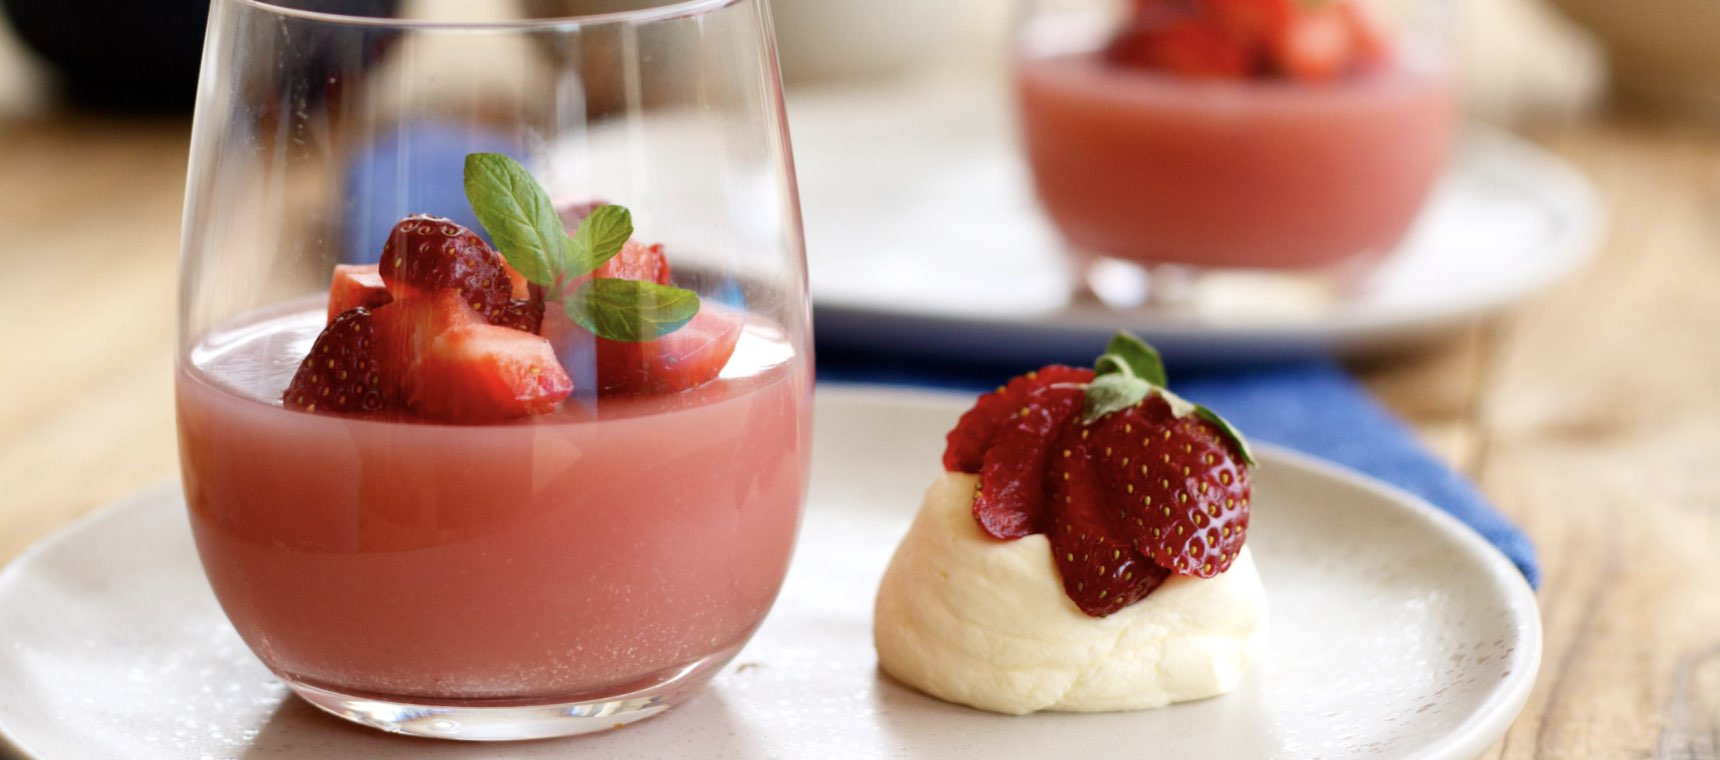 Dairy Free Strawberry Panna Cotta